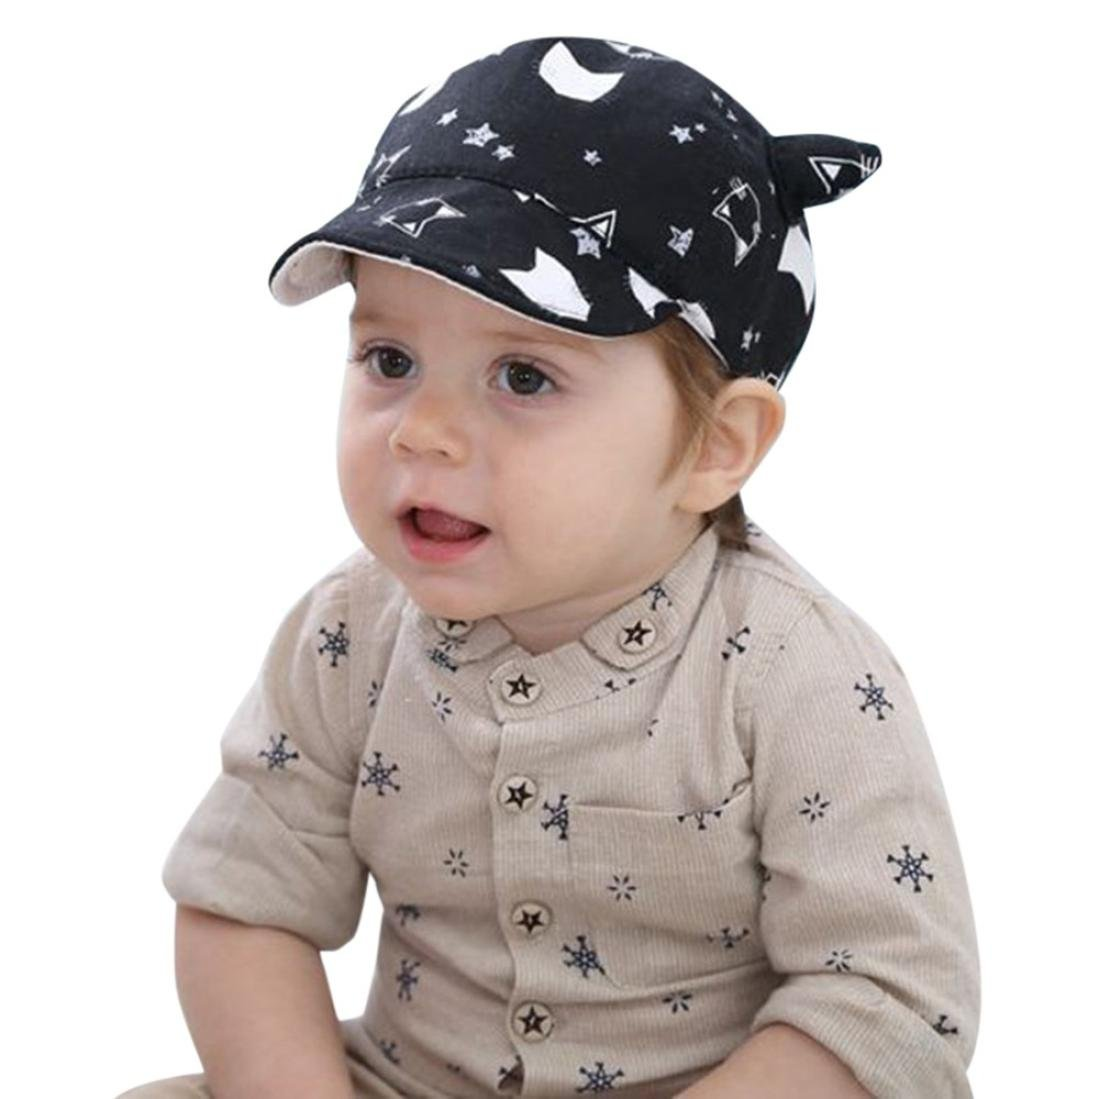 Elevin(TM) Toddler Hat Baby Boy Girl Kid Newborn Winter Warm Baseball Cap Beanie (B Black)